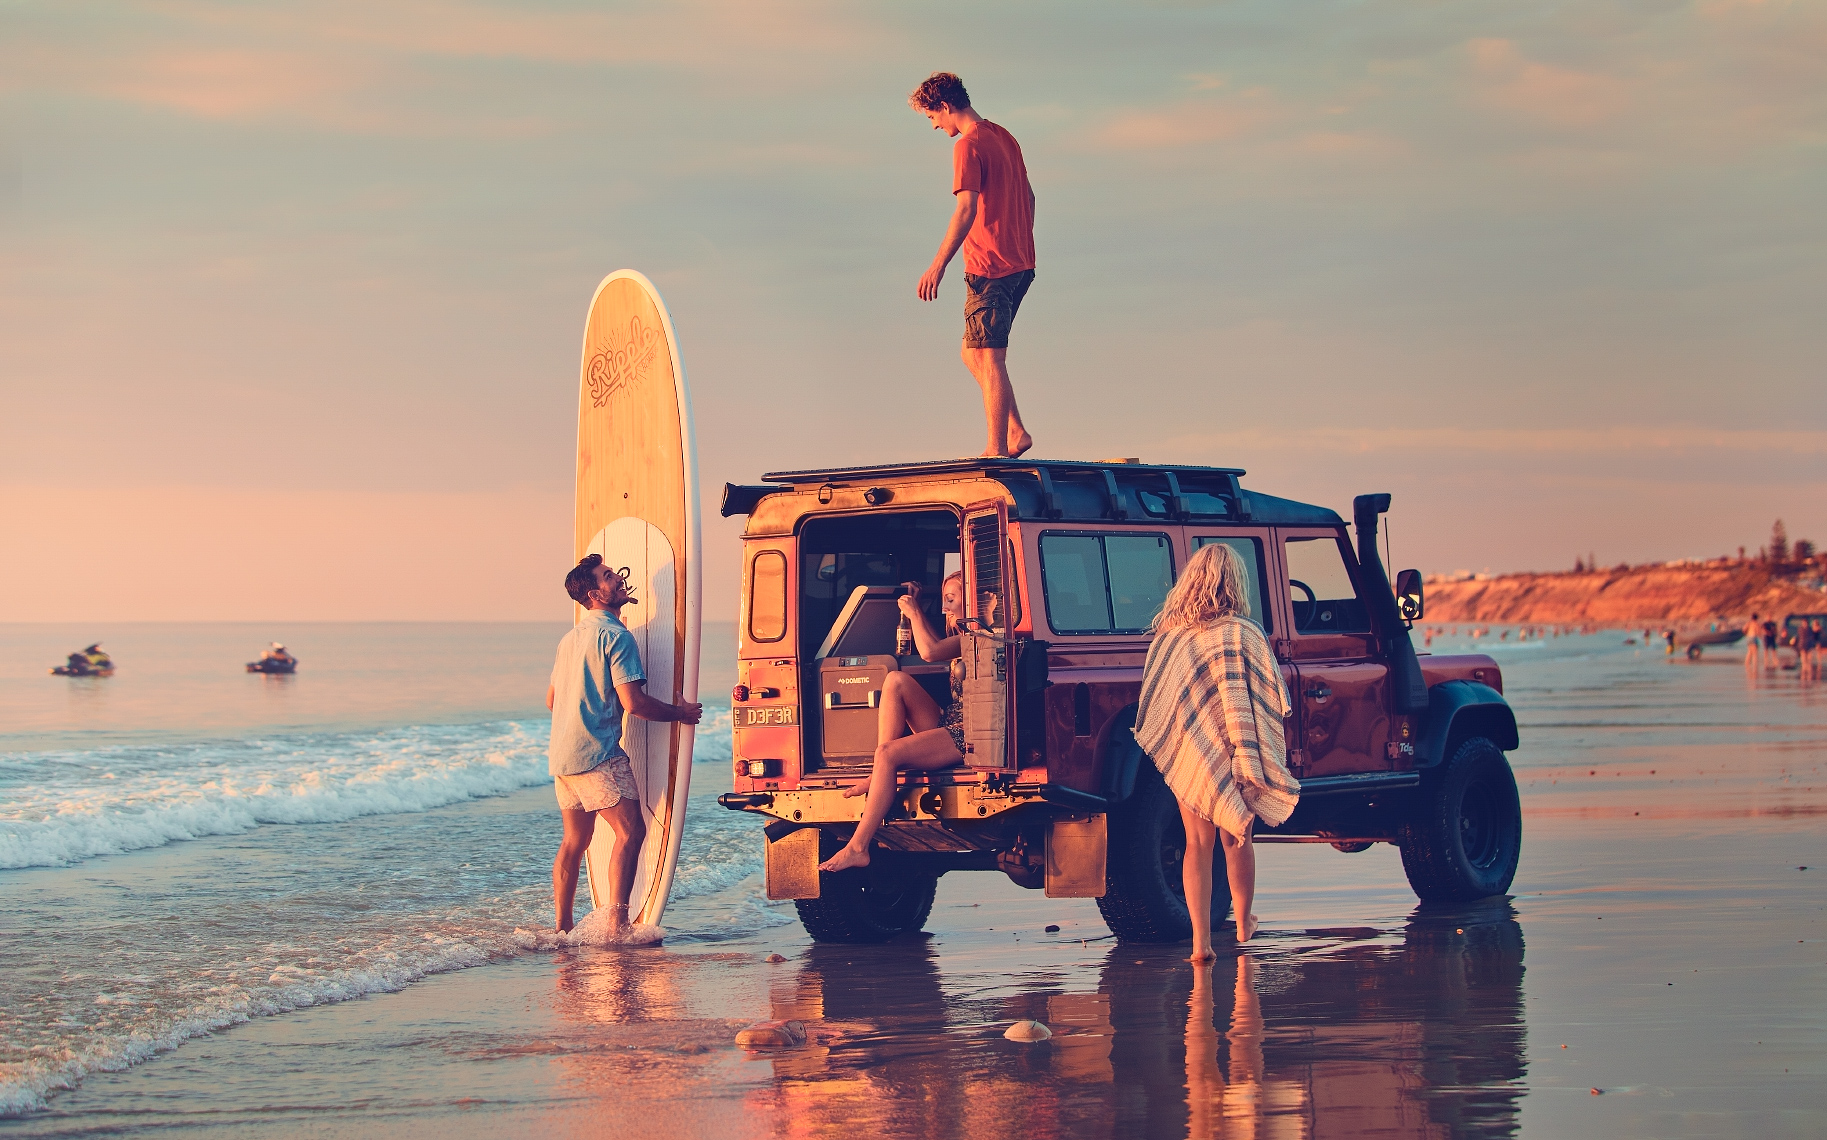 Landrover_Surf_Beach_Final_Master